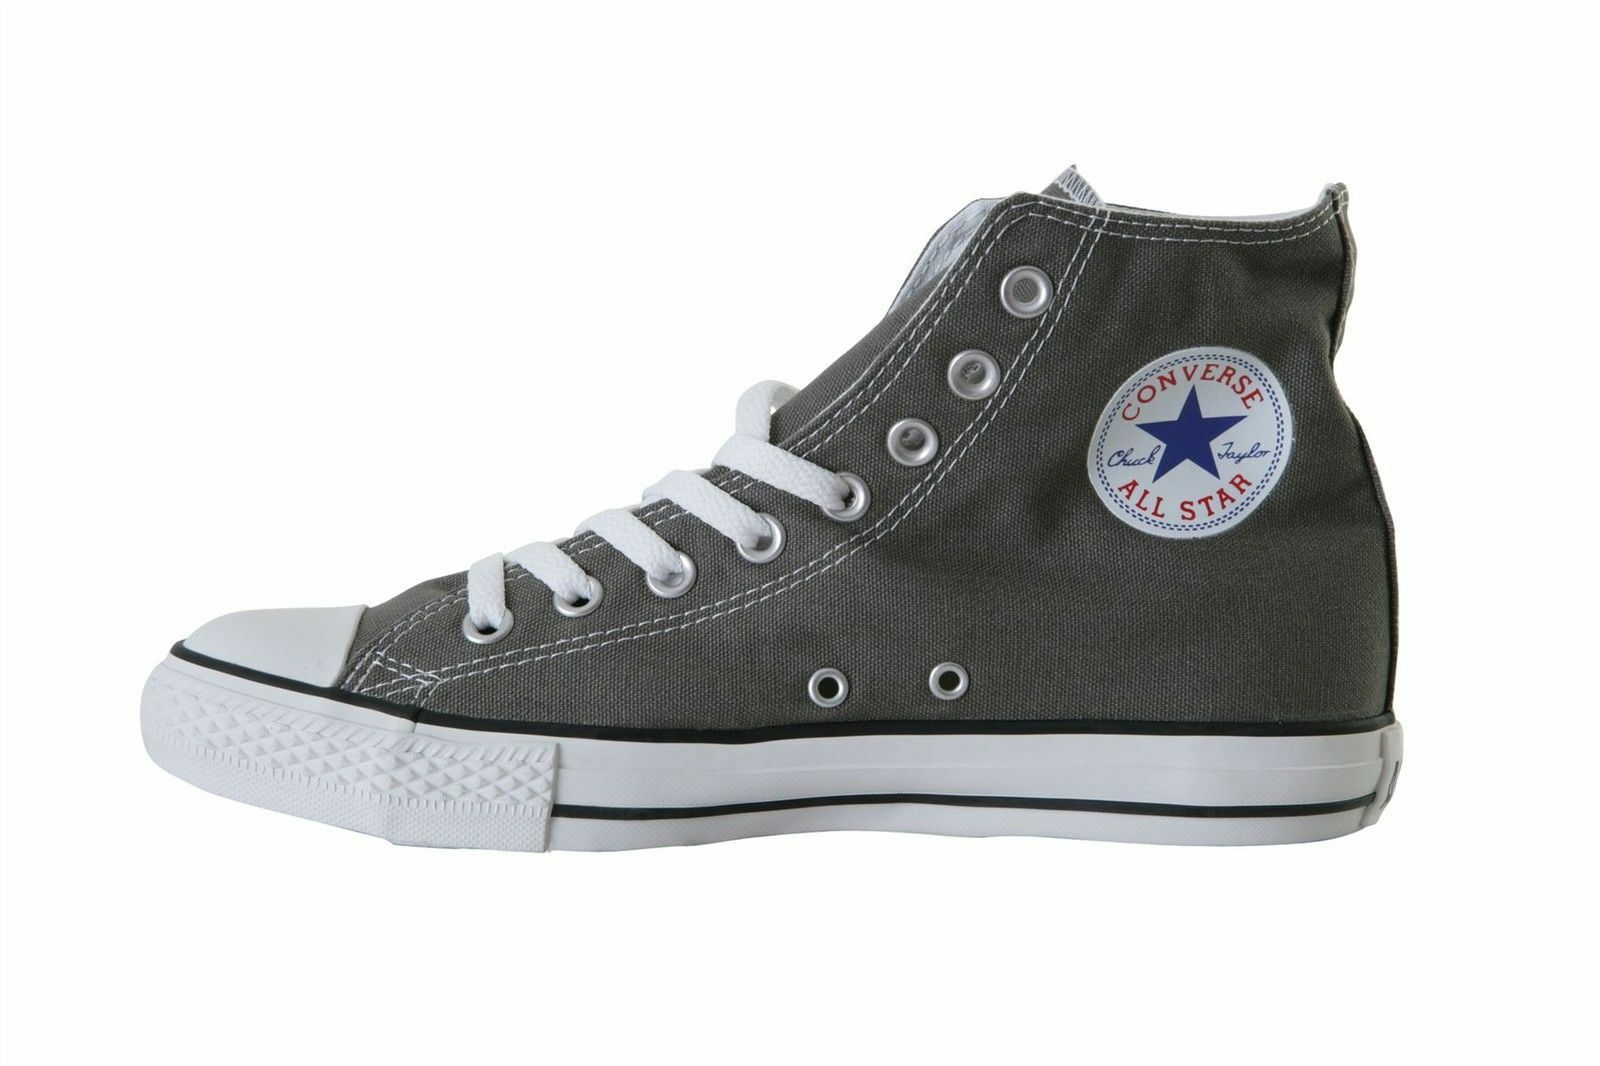 CONVERSE SEASNL ALL STAR CHUCK TAYLOR HI Homme Chaussures CHARCOAL AJ793 Taille 12 NEW